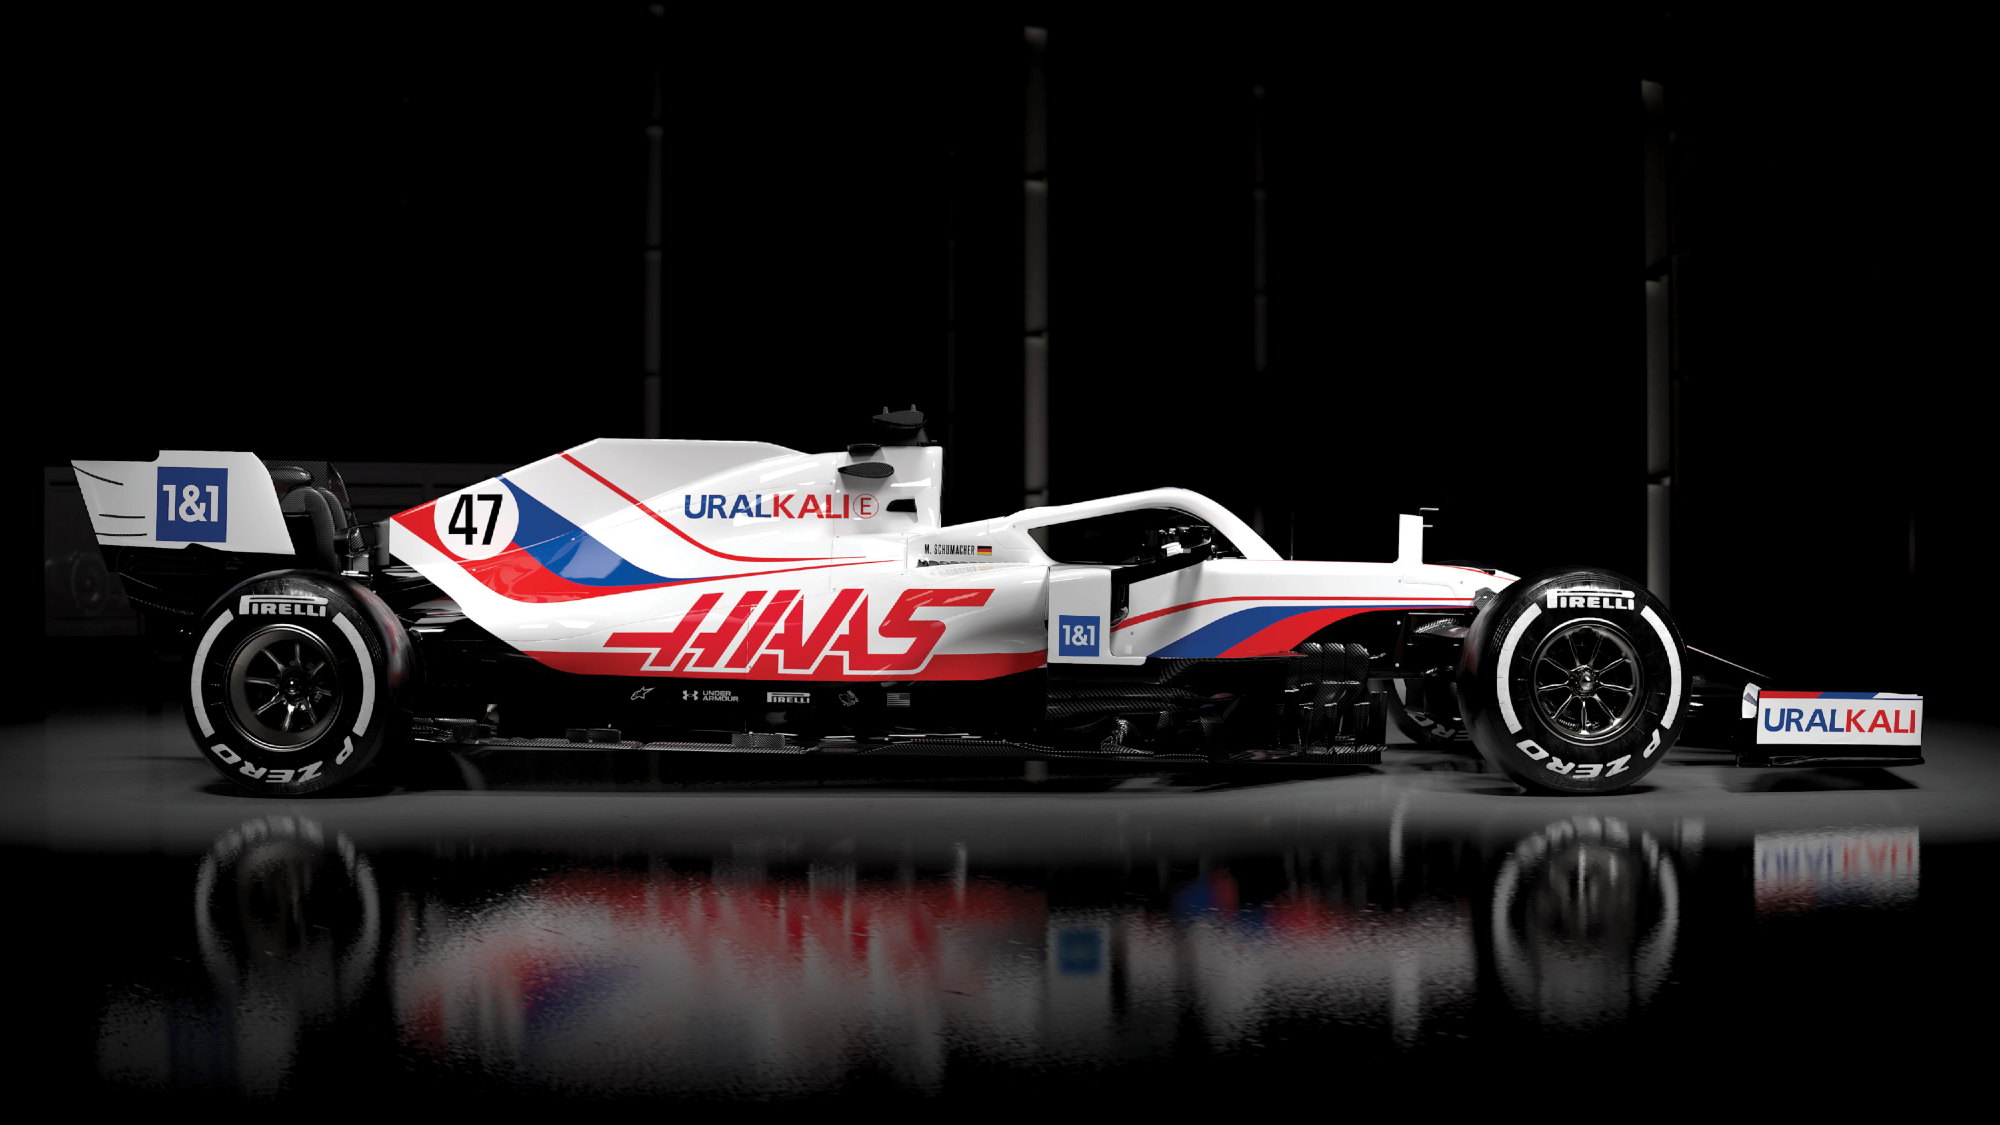 Haas shows off 2021 livery and announces Uralkali as title sponsor